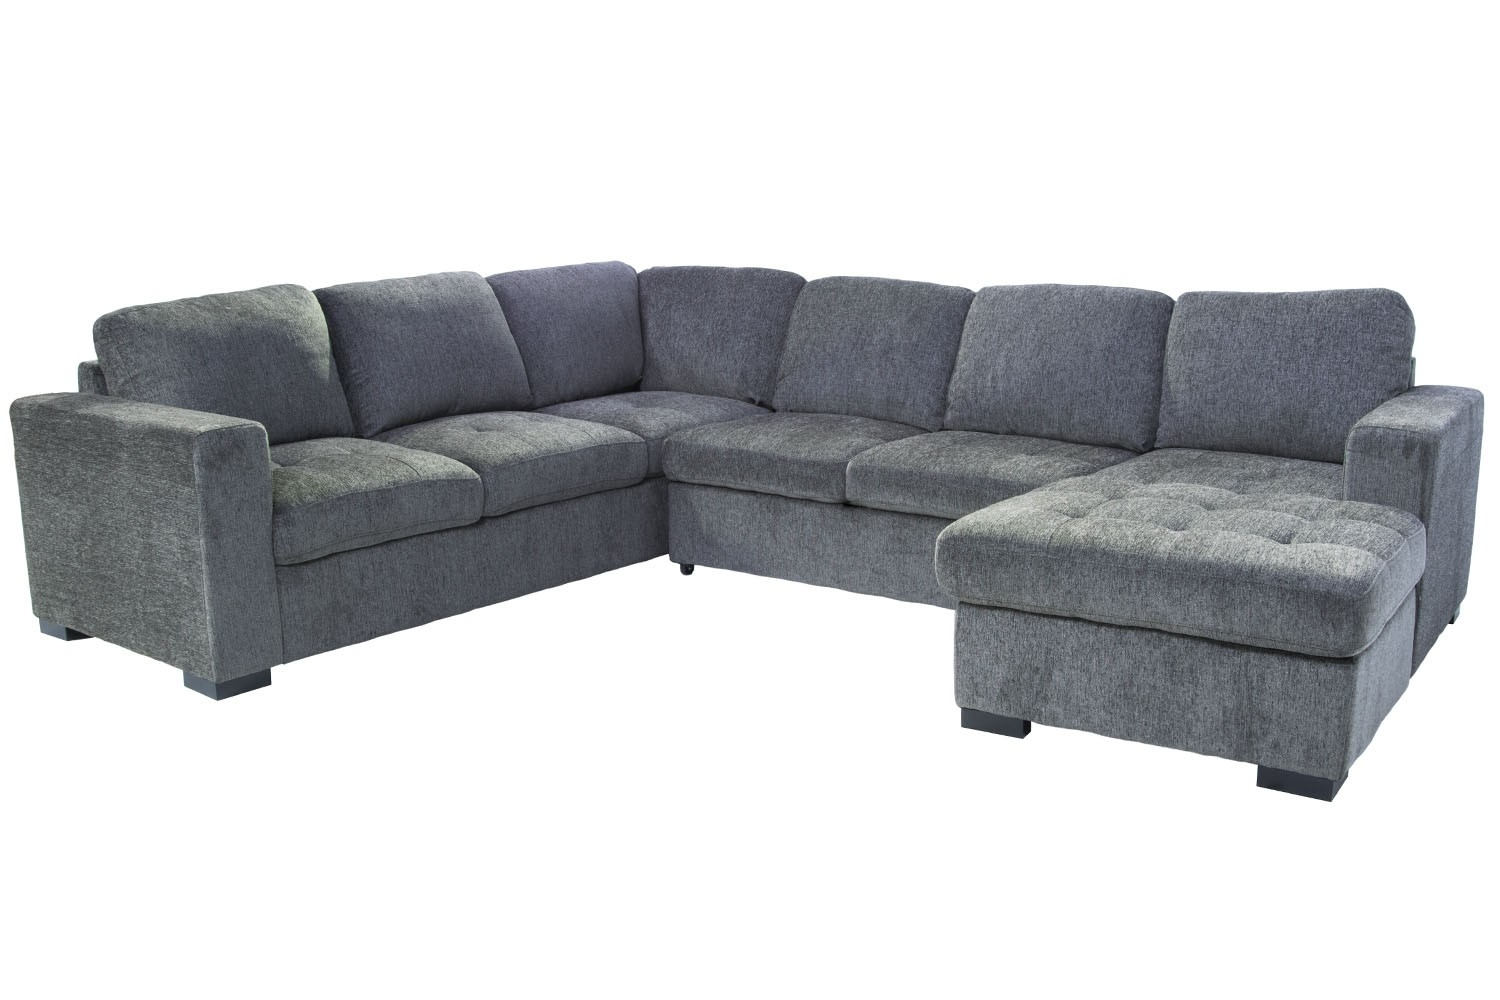 Claire 3 Piece Right Facing Chaise Sectional In Gray | Save Mor Throughout Aquarius Light Grey 2 Piece Sectionals With Laf Chaise (View 23 of 30)